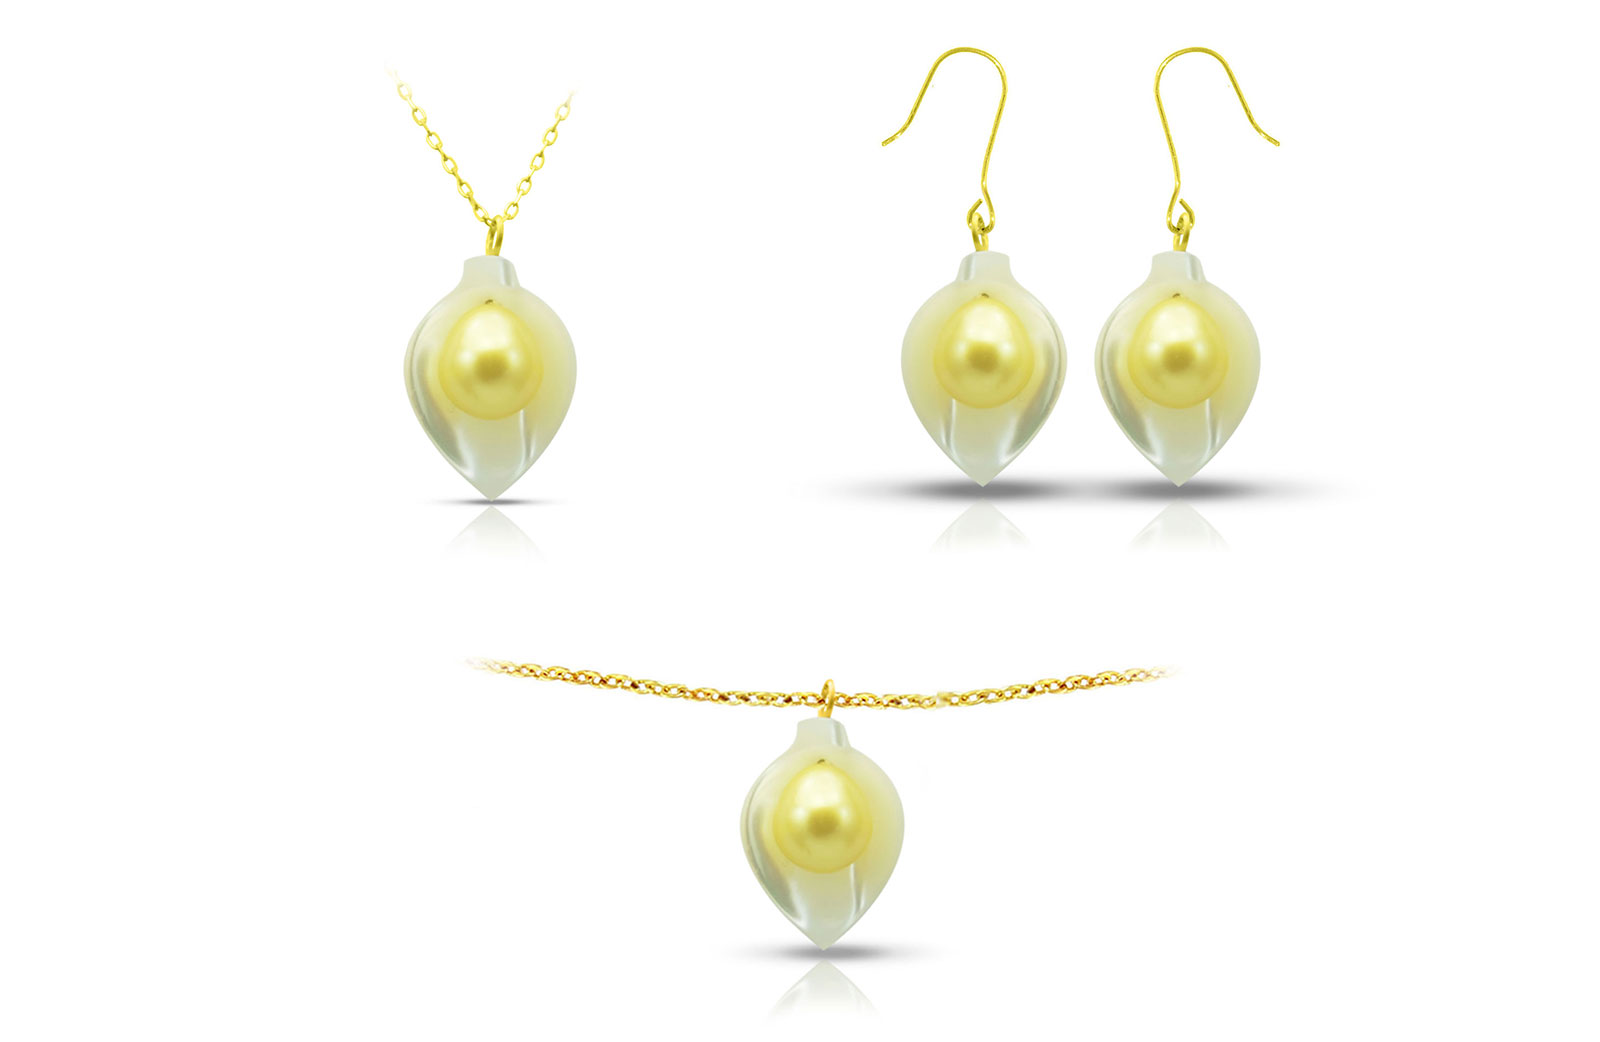 Vera Perla 18K Gold Calla Lily Mother of Pearl with 7mm Golden Pearl Jewelry Set - 3 pcs.